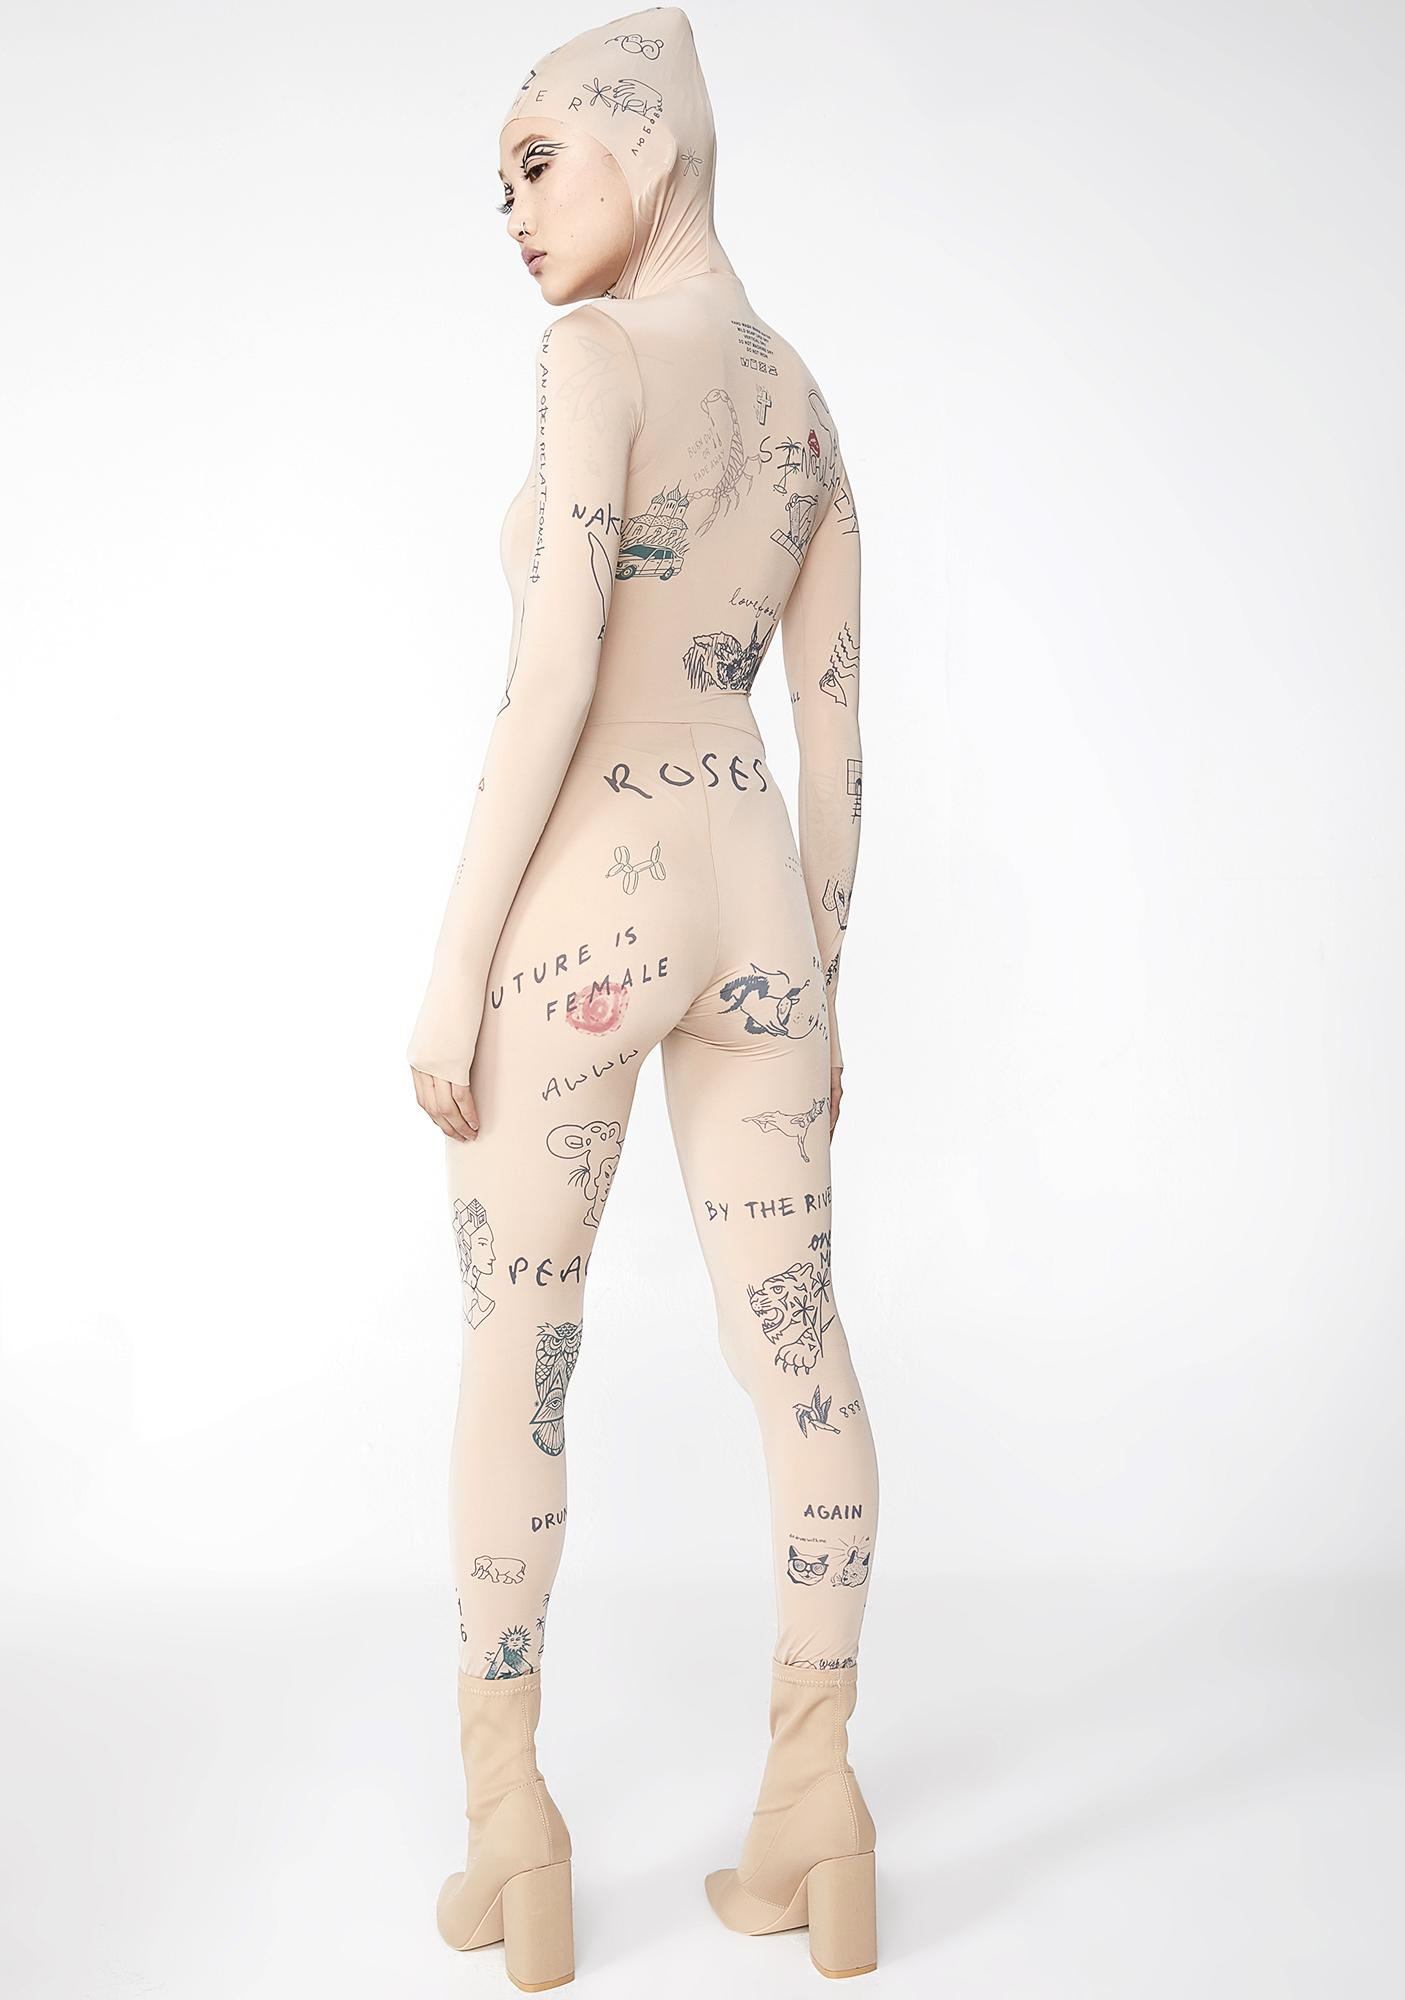 TATTOOSWEATERS Printed Overall